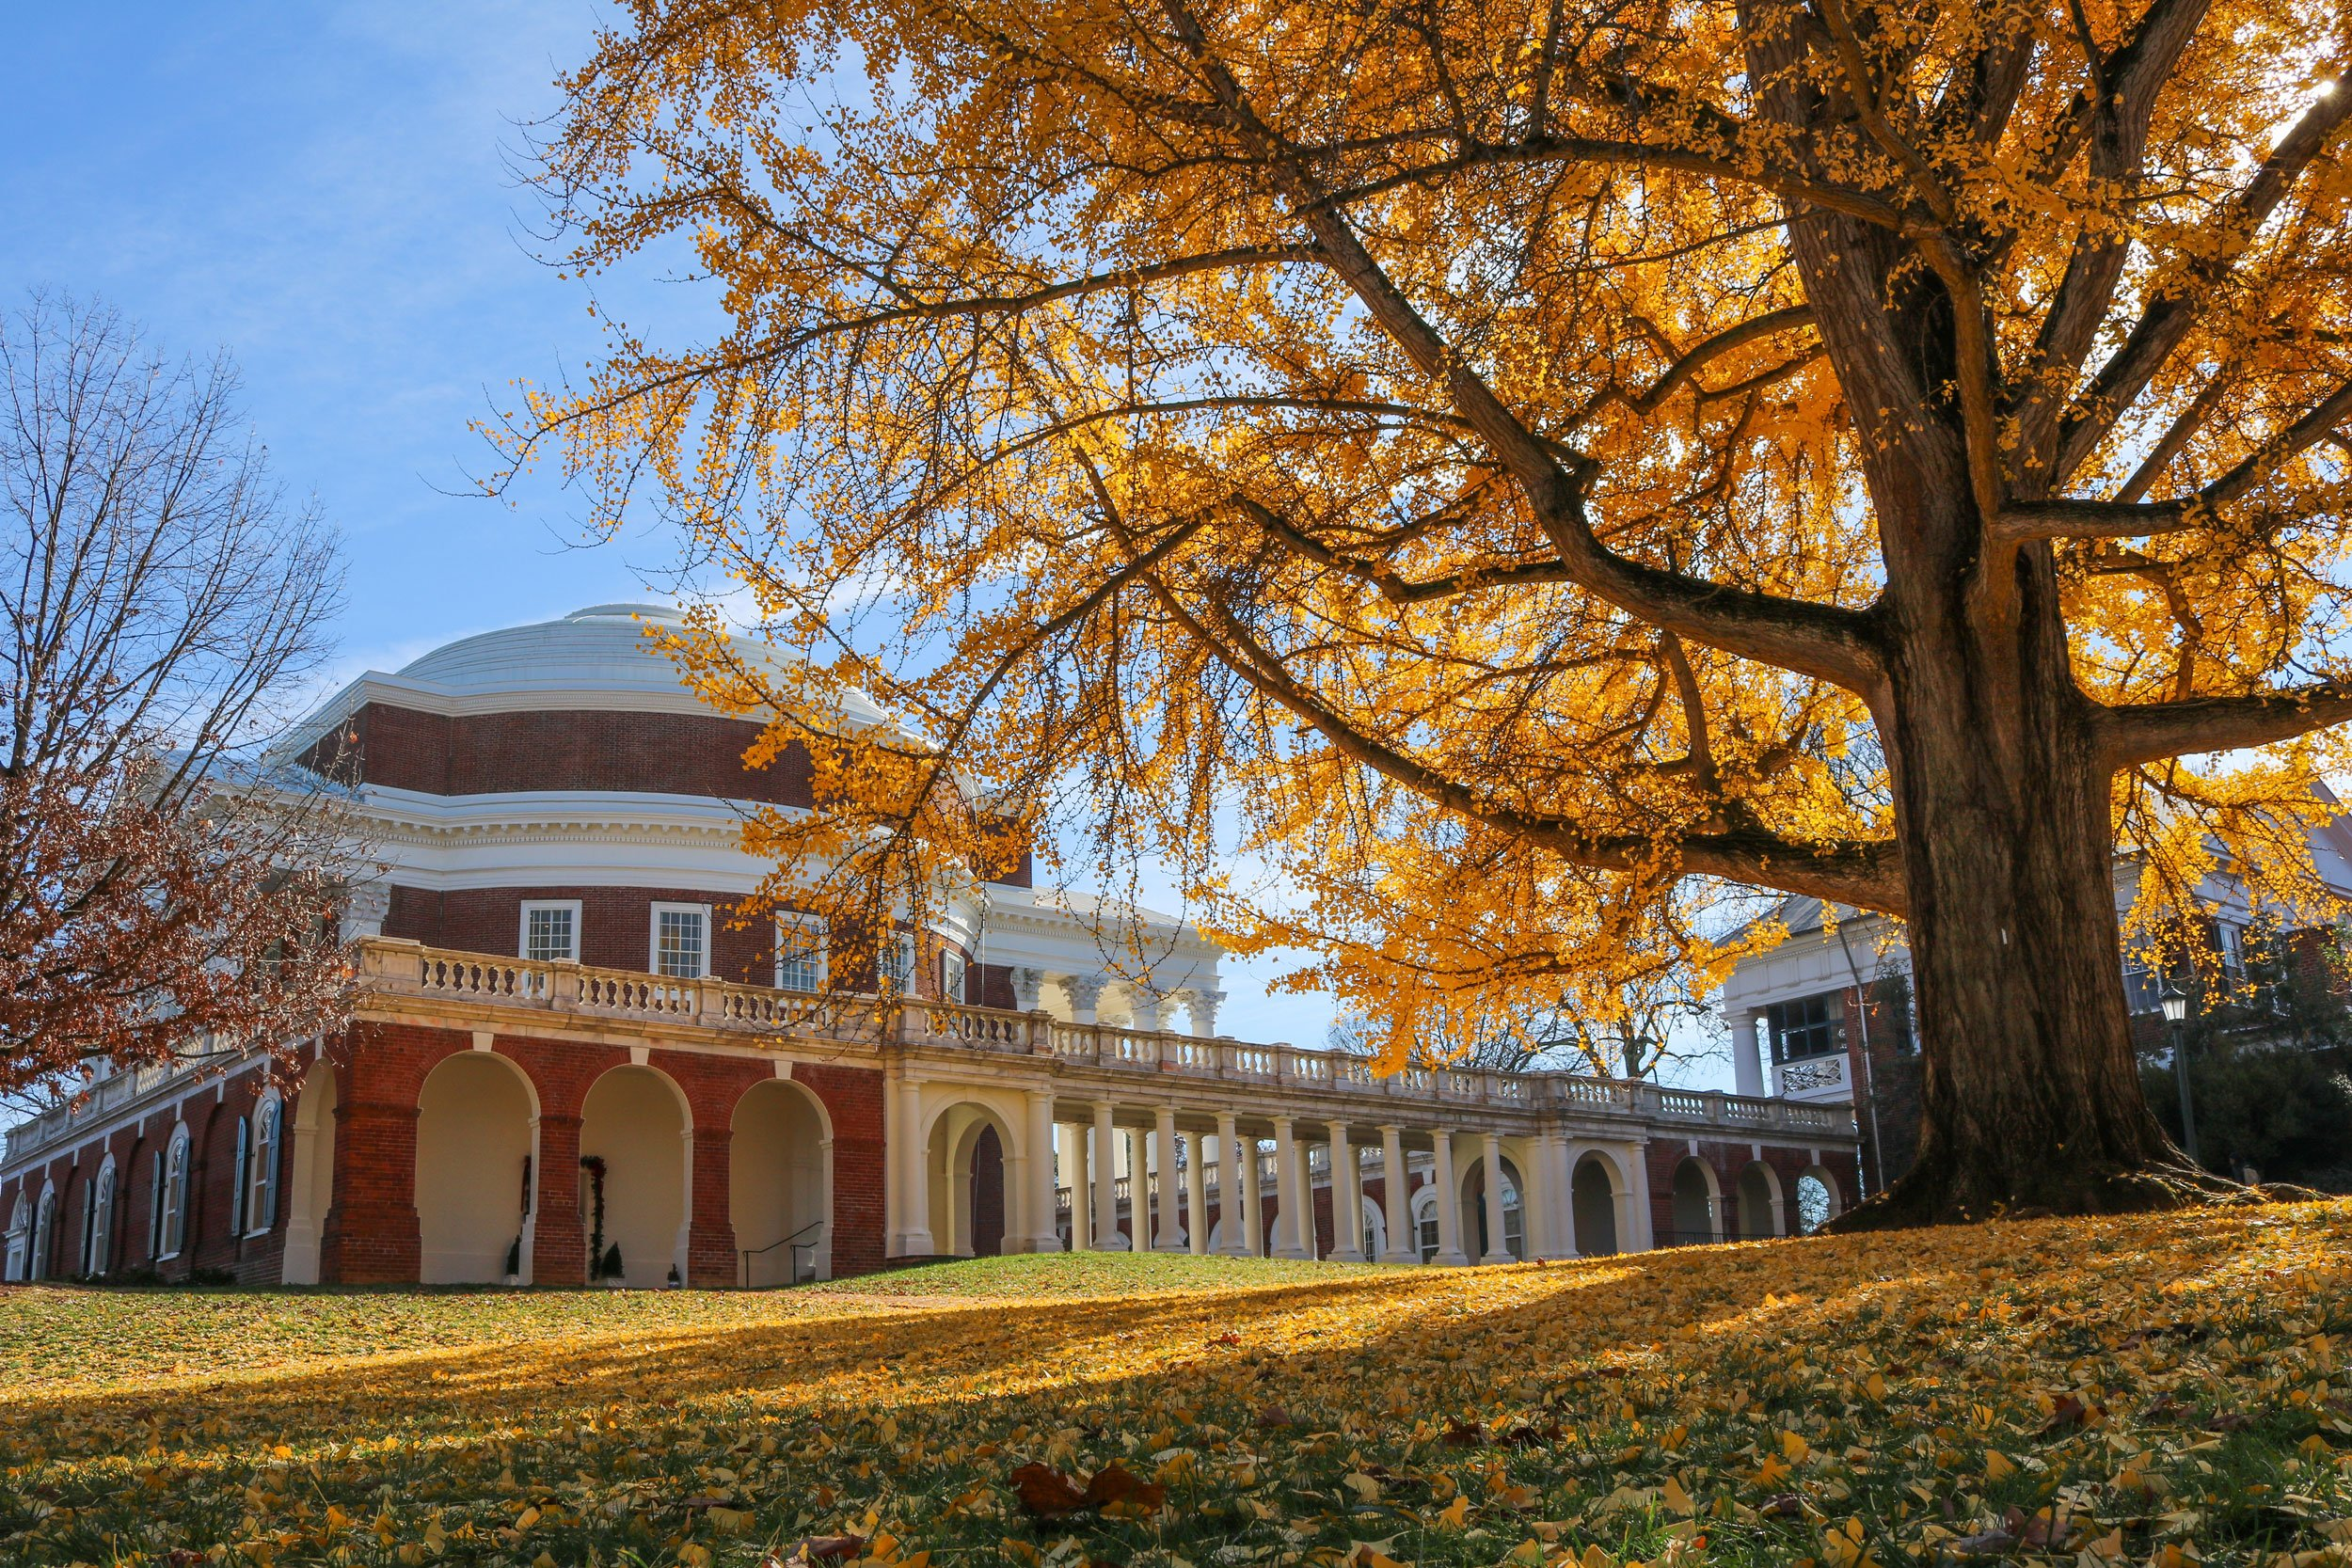 University of Virginia | Free Things to Do in Charlottesville